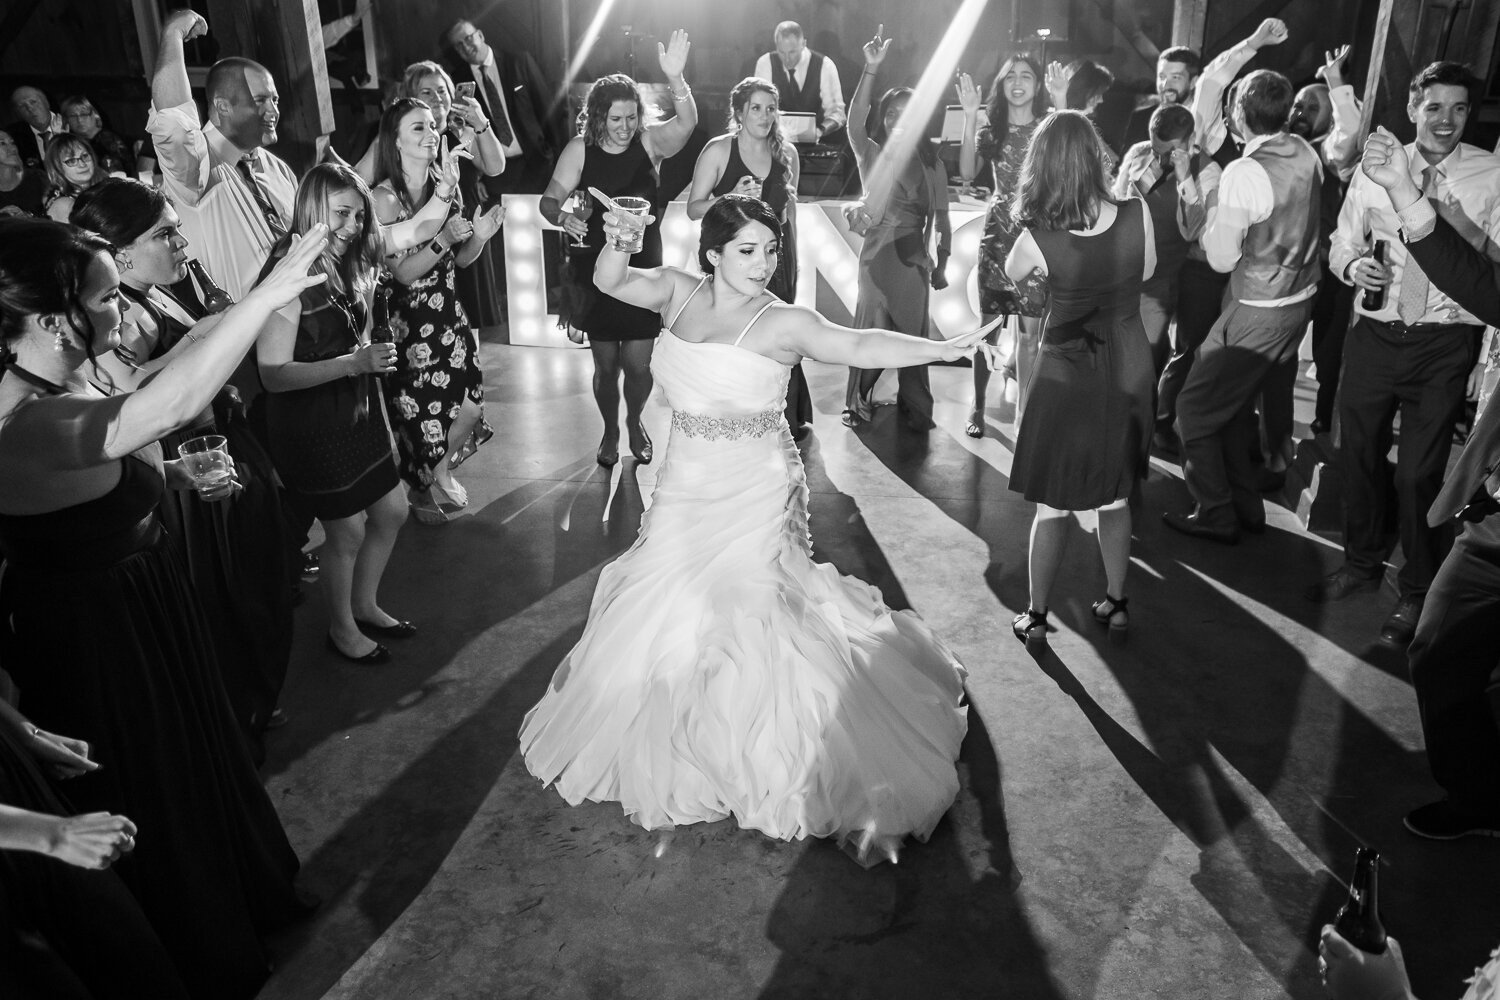 Quonquont-Farm-Wedding-Four-Wings-Fhotography-48.jpg